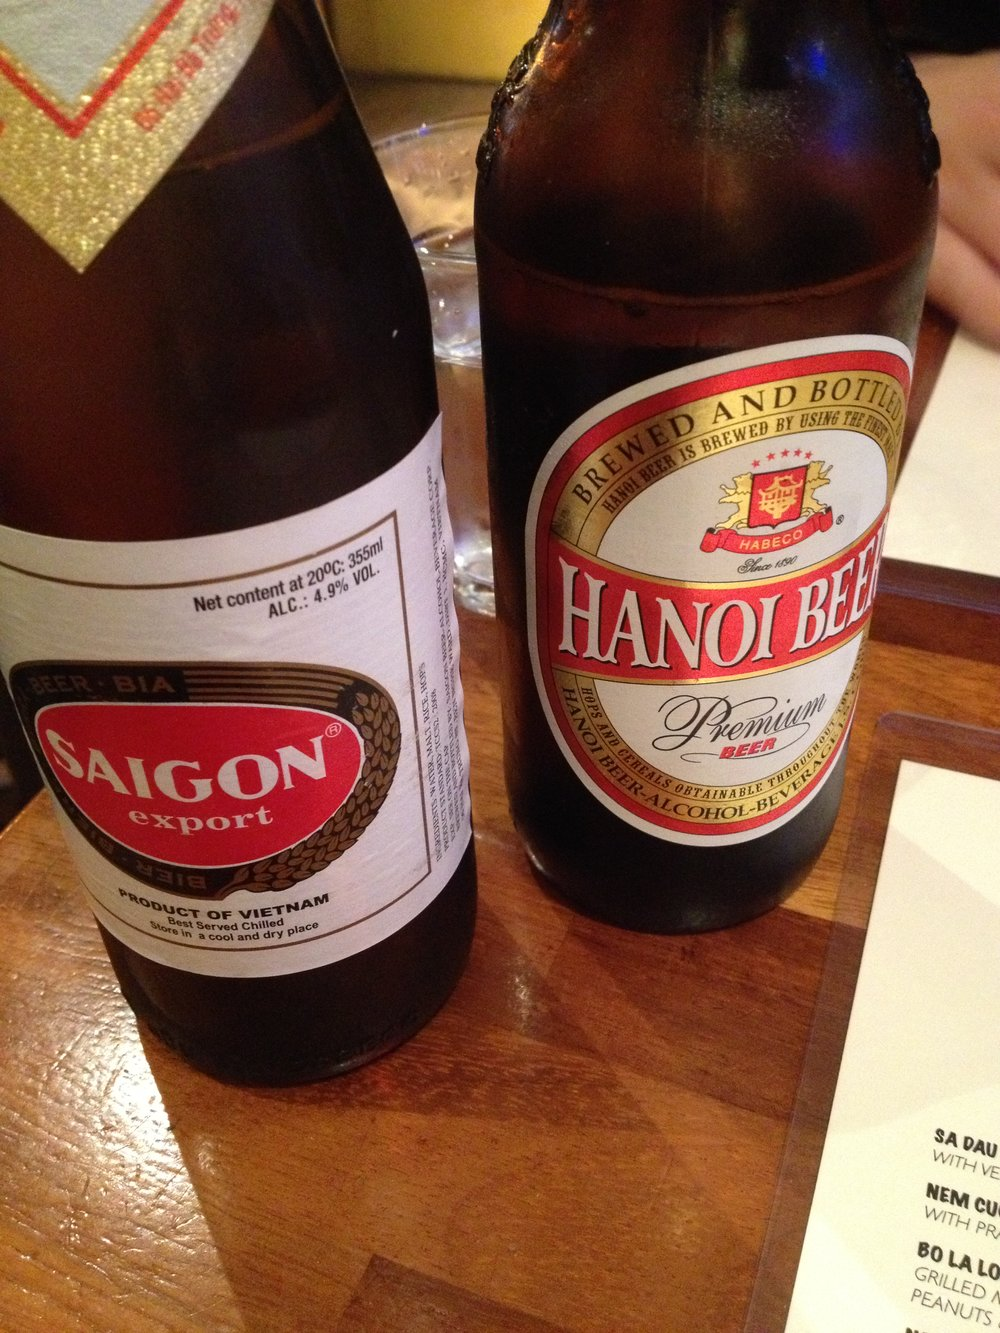 The Hanoi Bike Shop beers